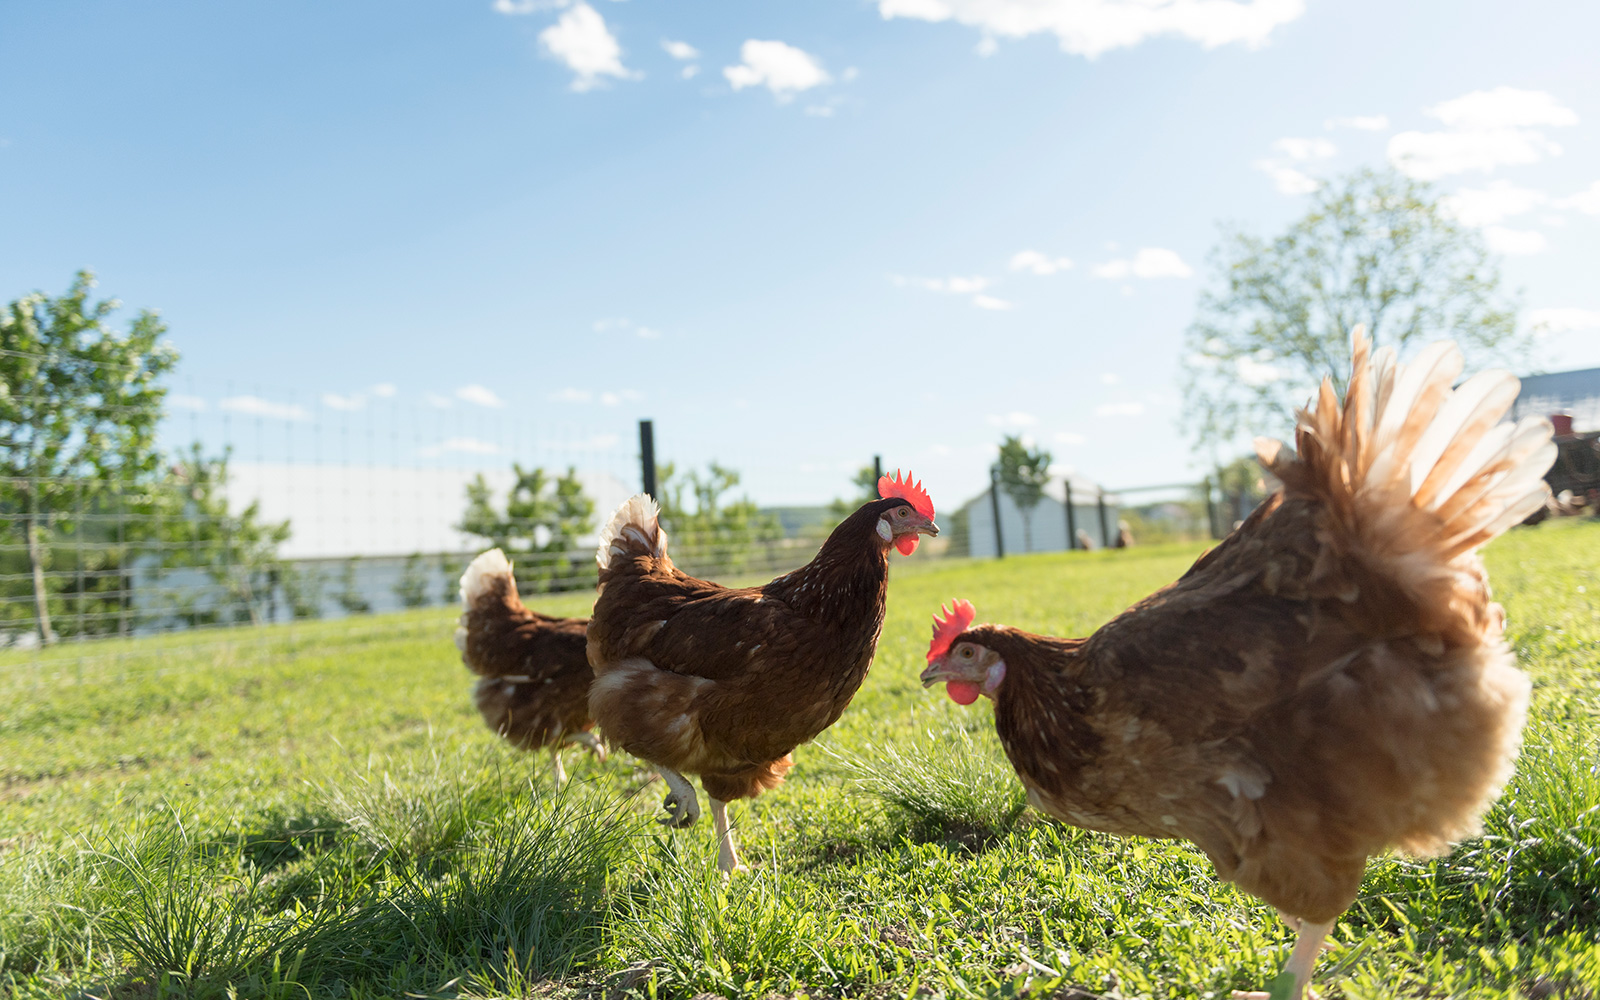 A low angle view of three chickens out on grass in the sunshine.